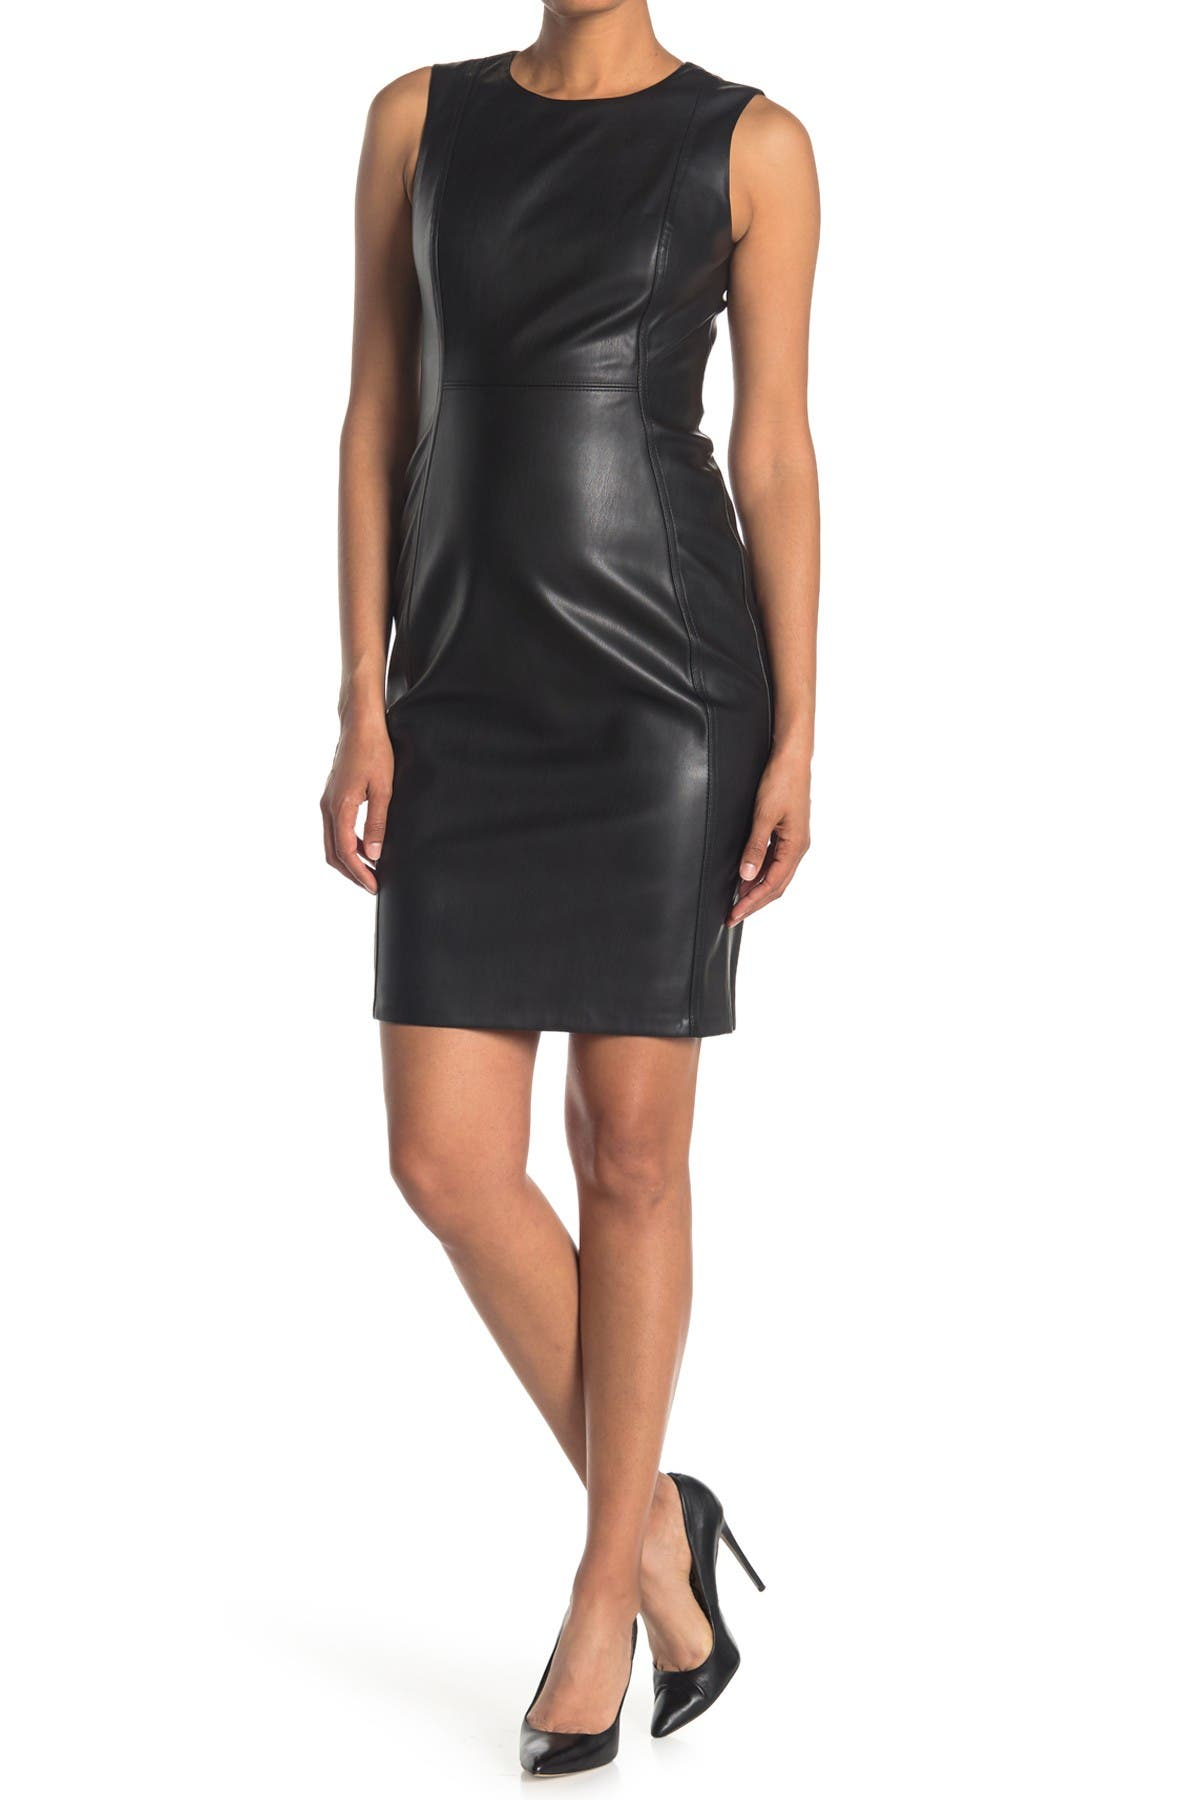 Image of Calvin Klein Sleeveless Seamed Faux Leather Dress